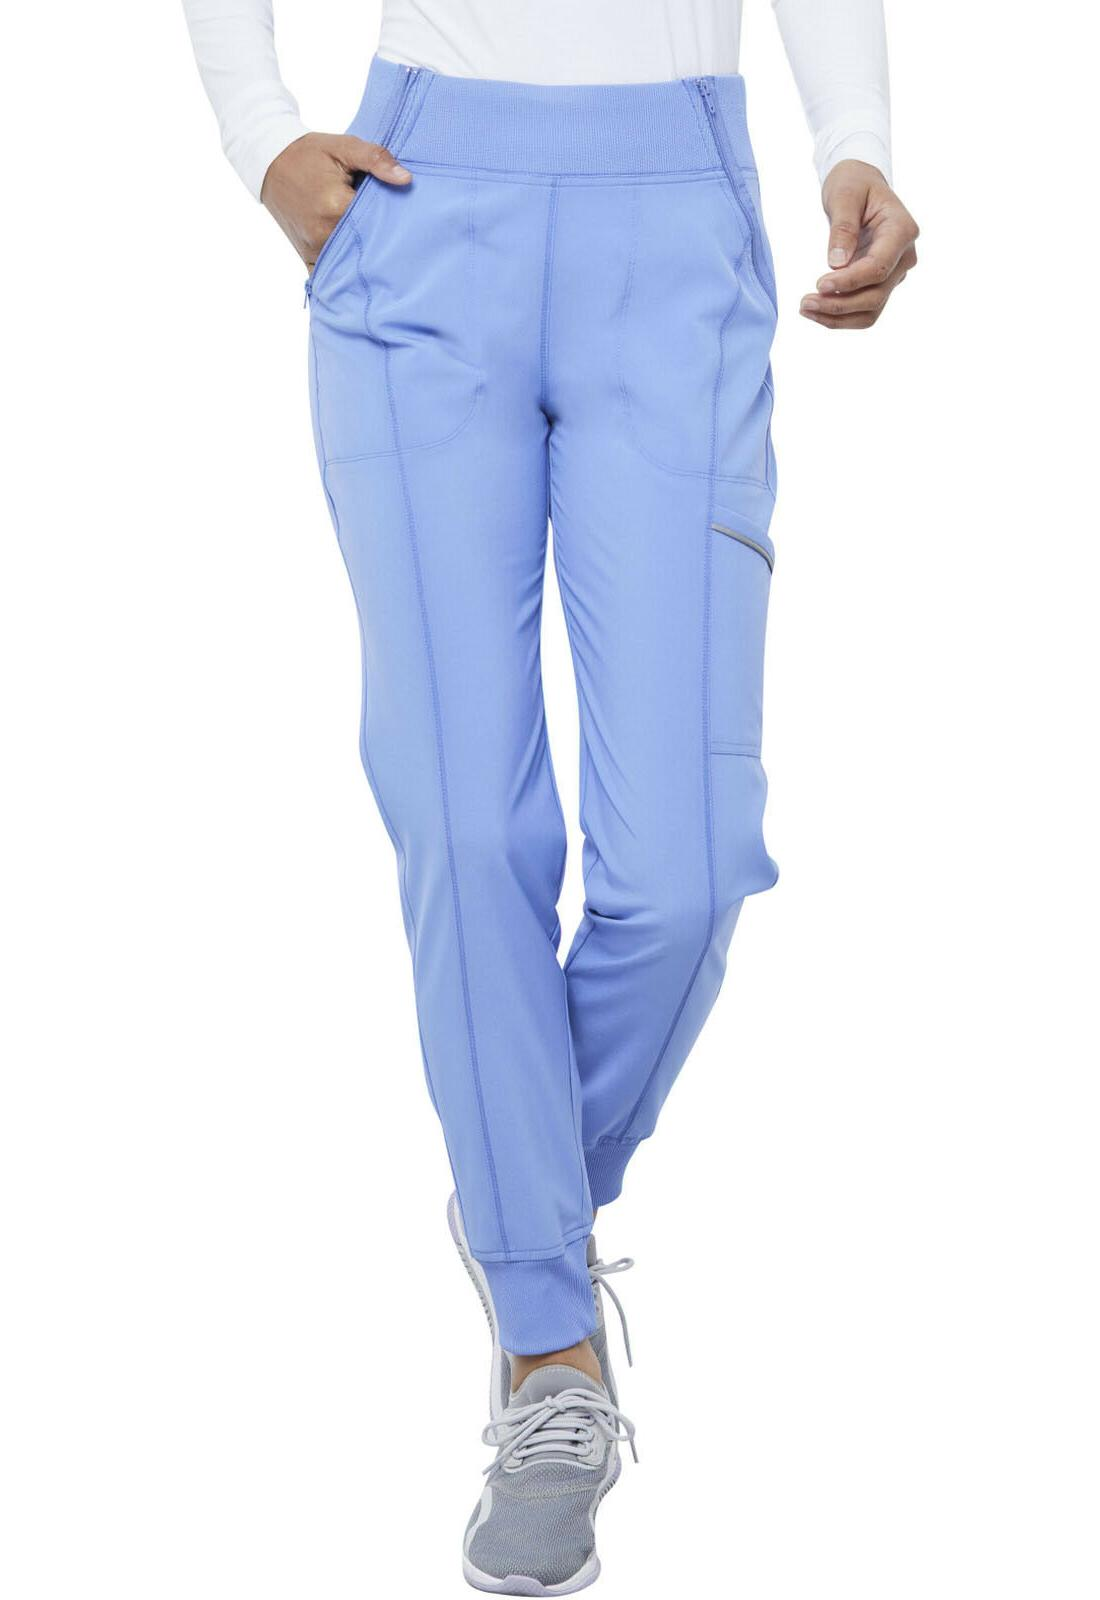 ciel blue scrubs infinity mid rise tapered